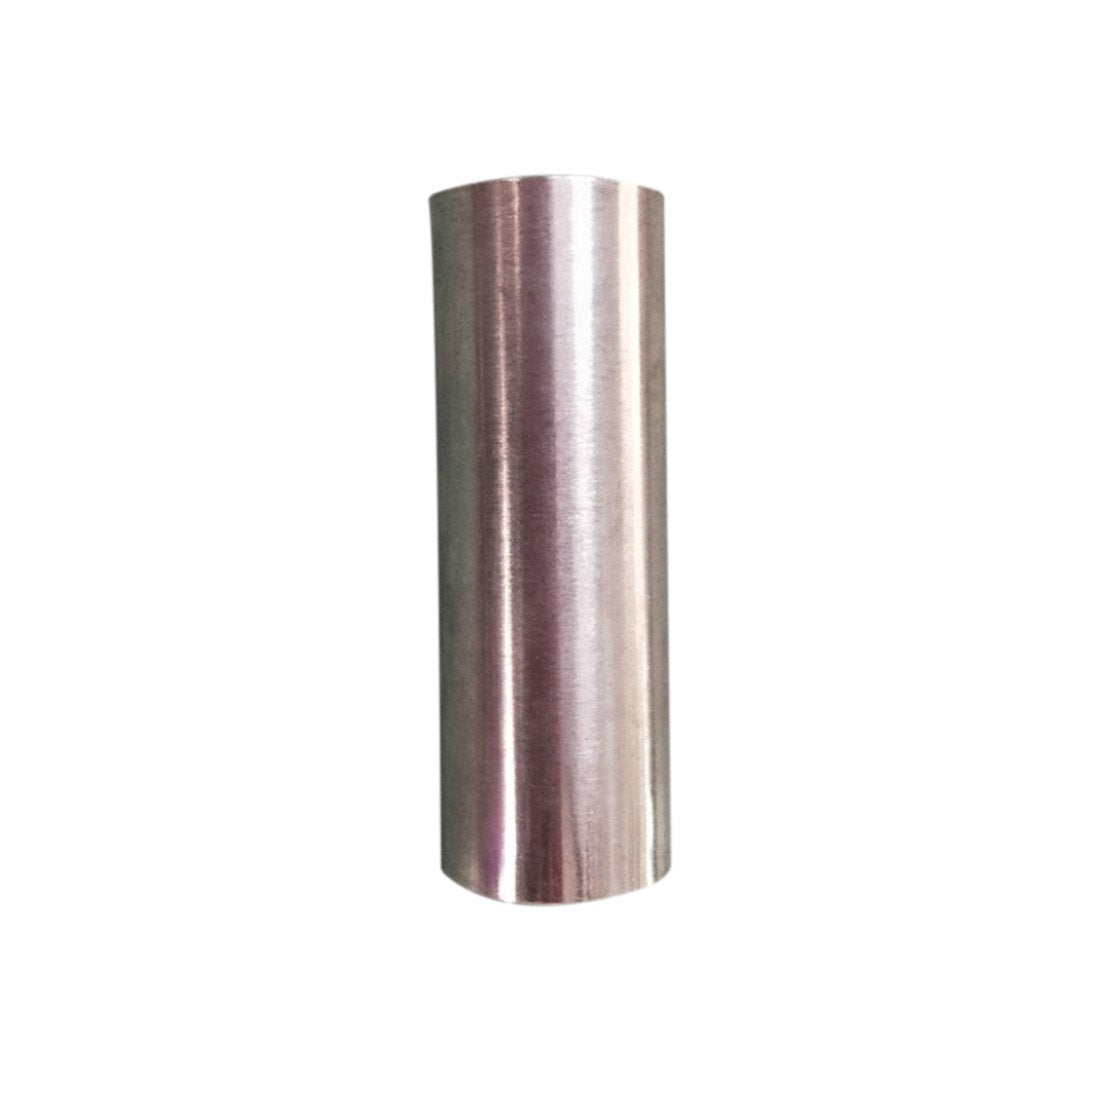 M401 Stainless Cylinder